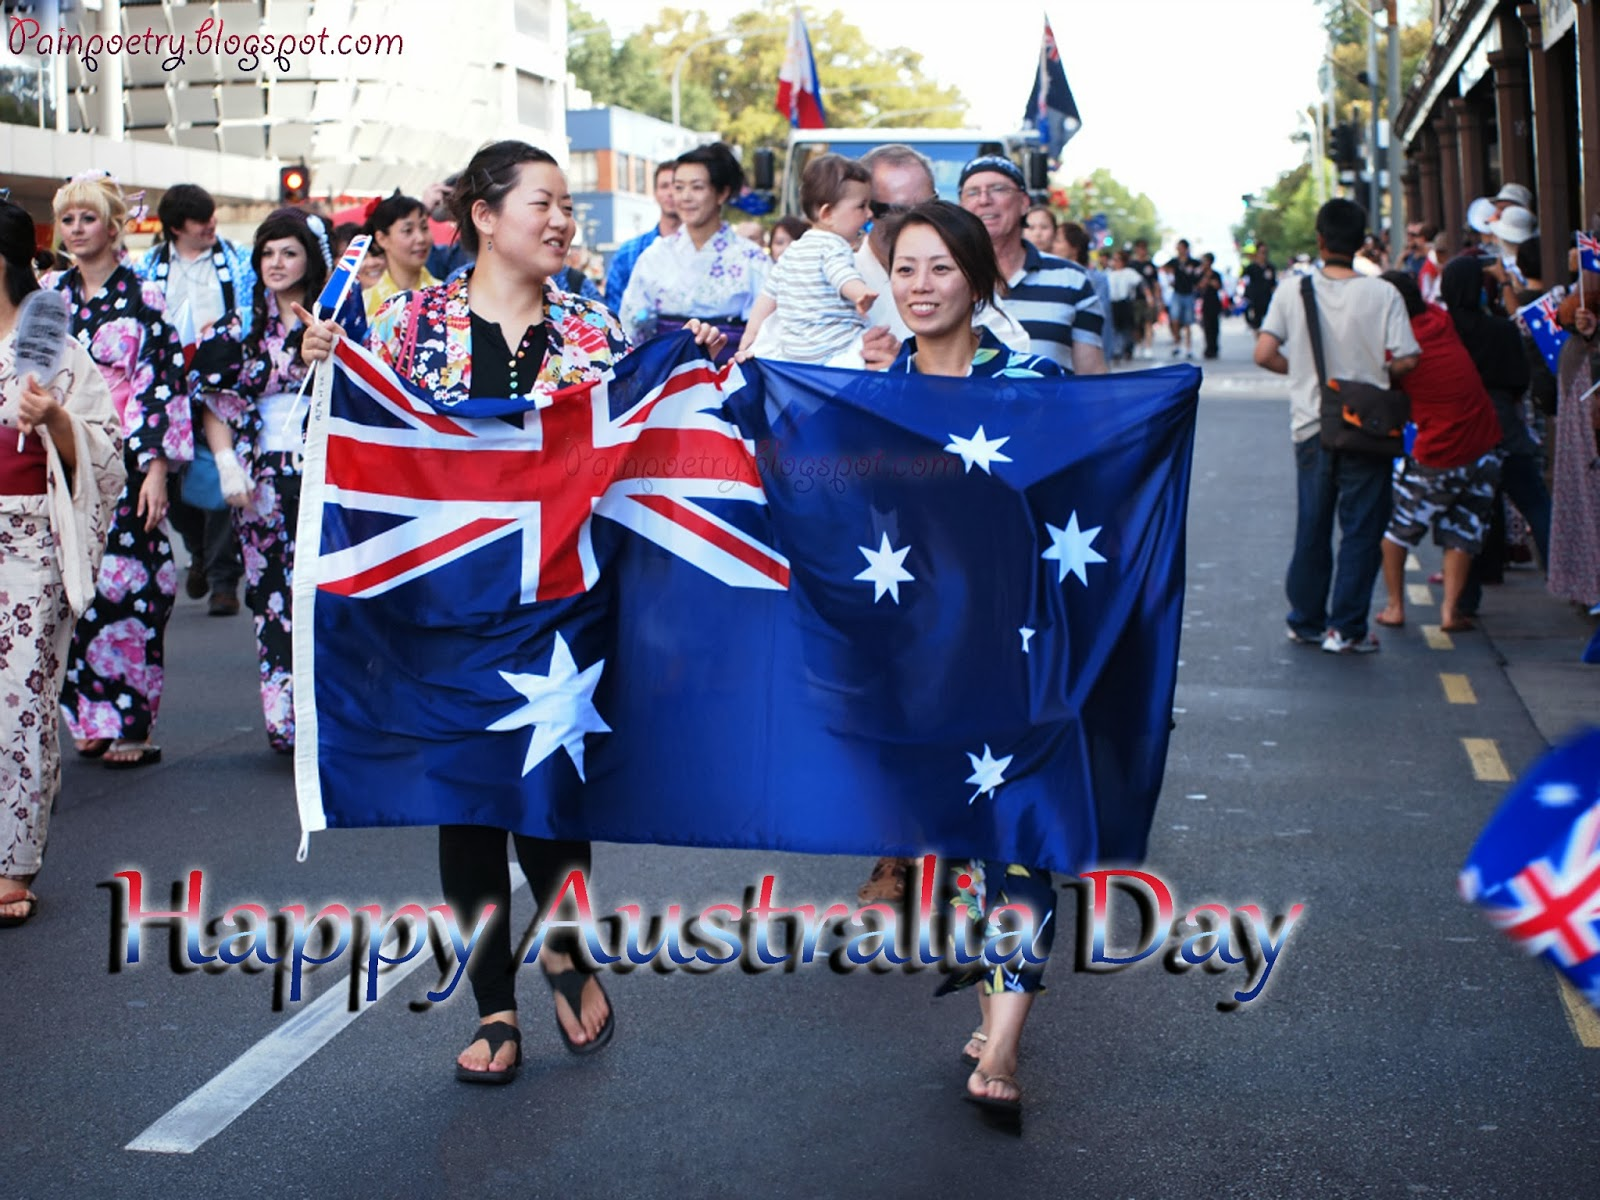 Happy Australia-Day-Celebration-Of-Flag-Image-HD-Wide